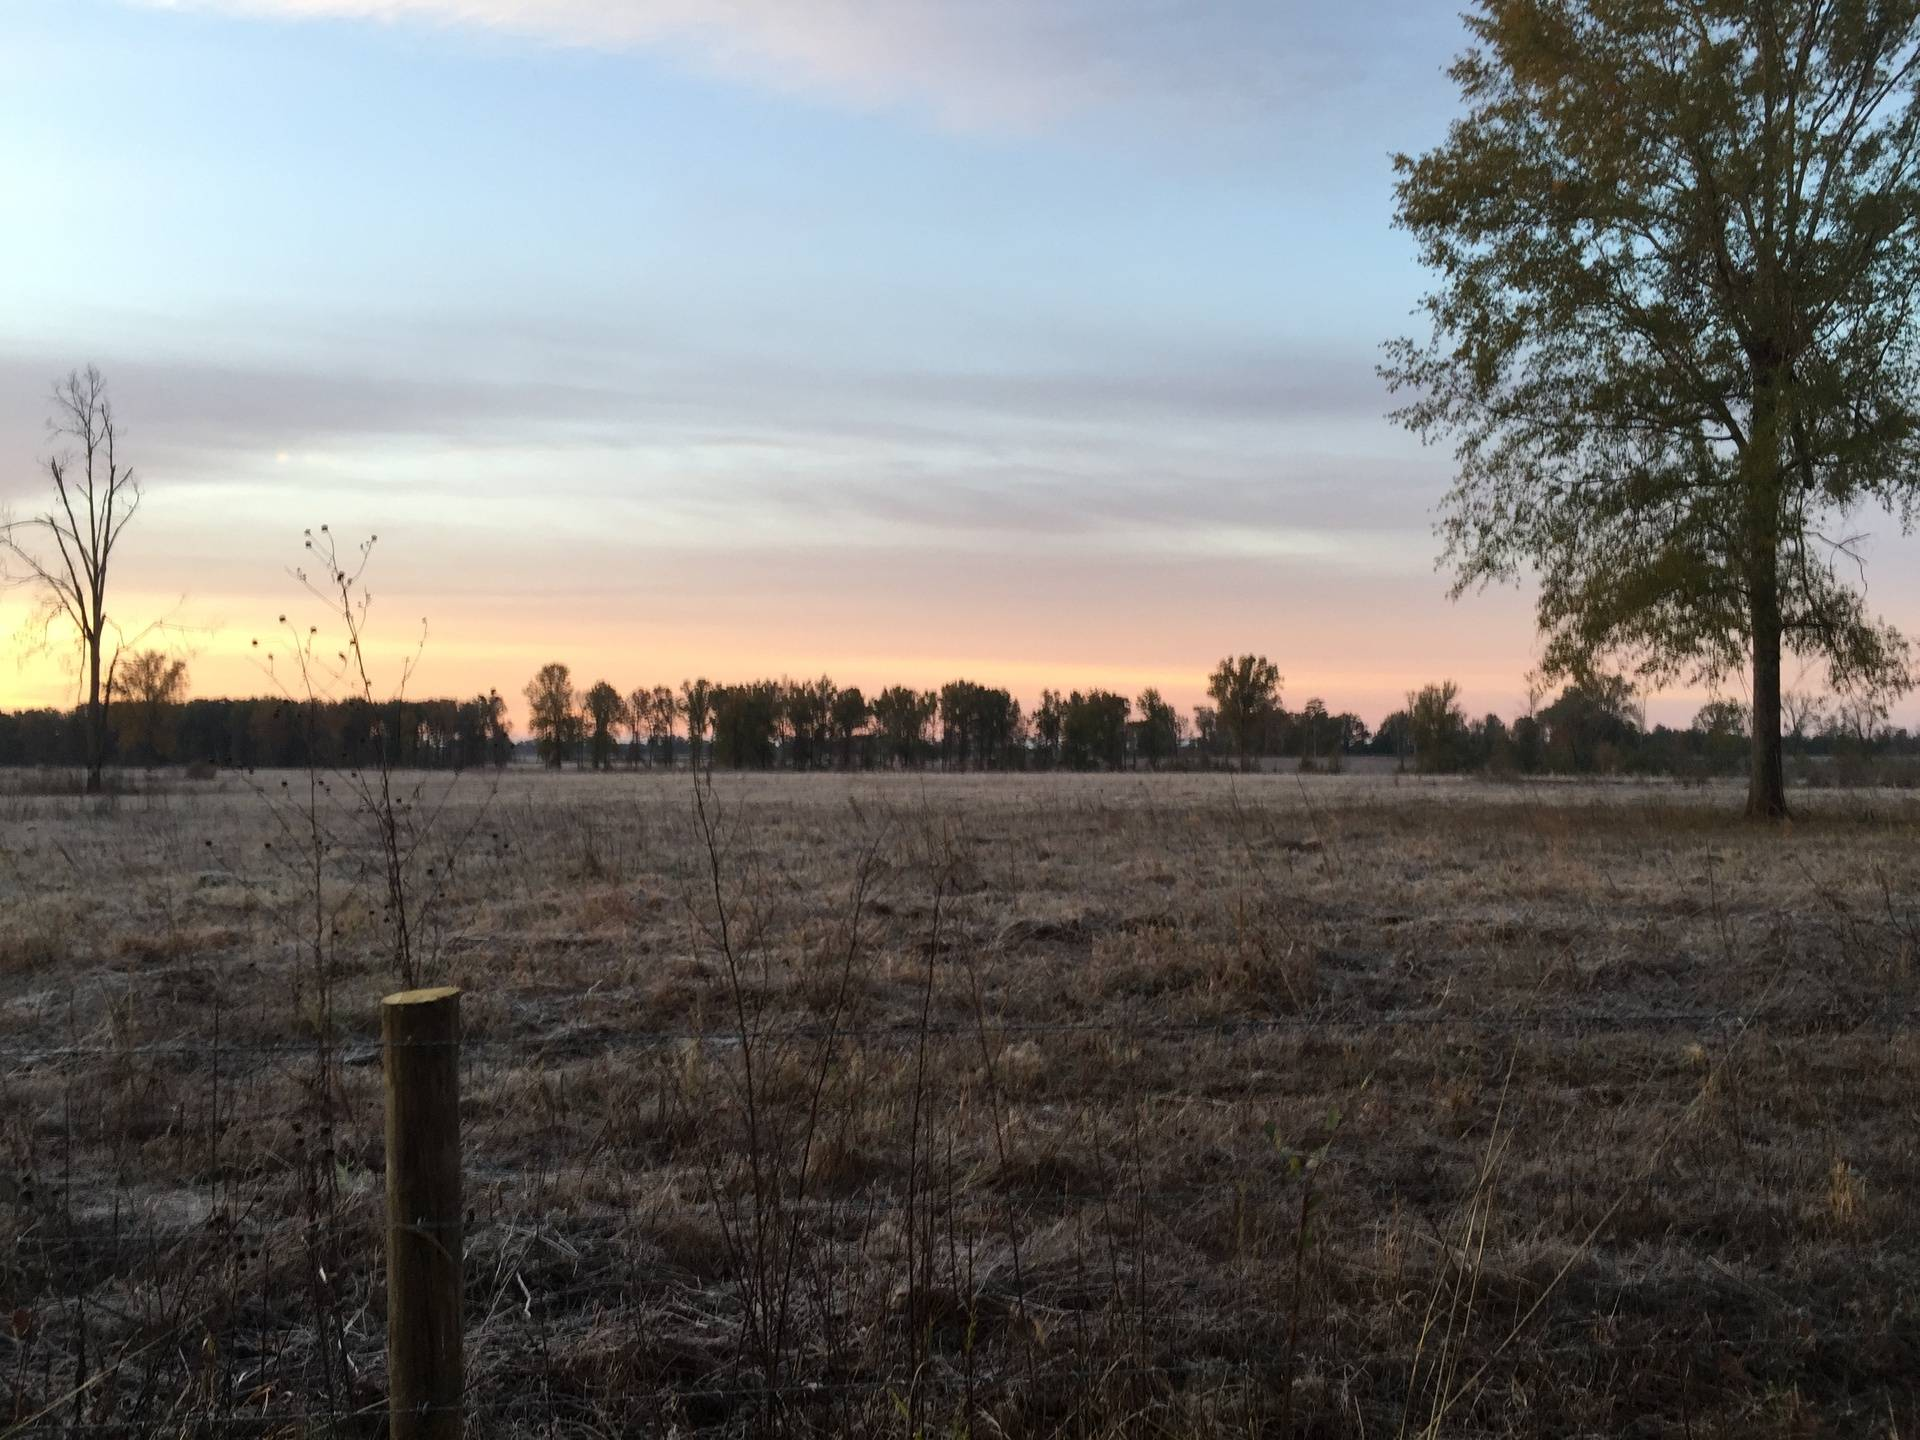 Sunset over a fence line